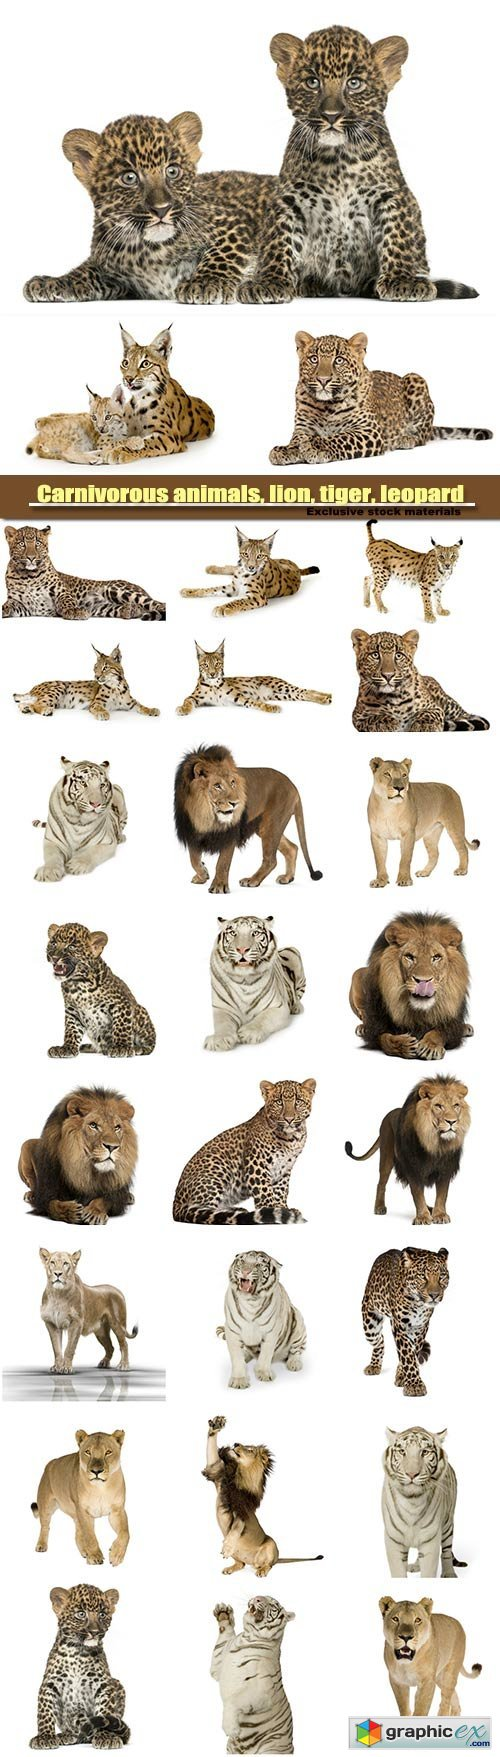 Carnivorous animals, lion, tiger, leopard and lynx